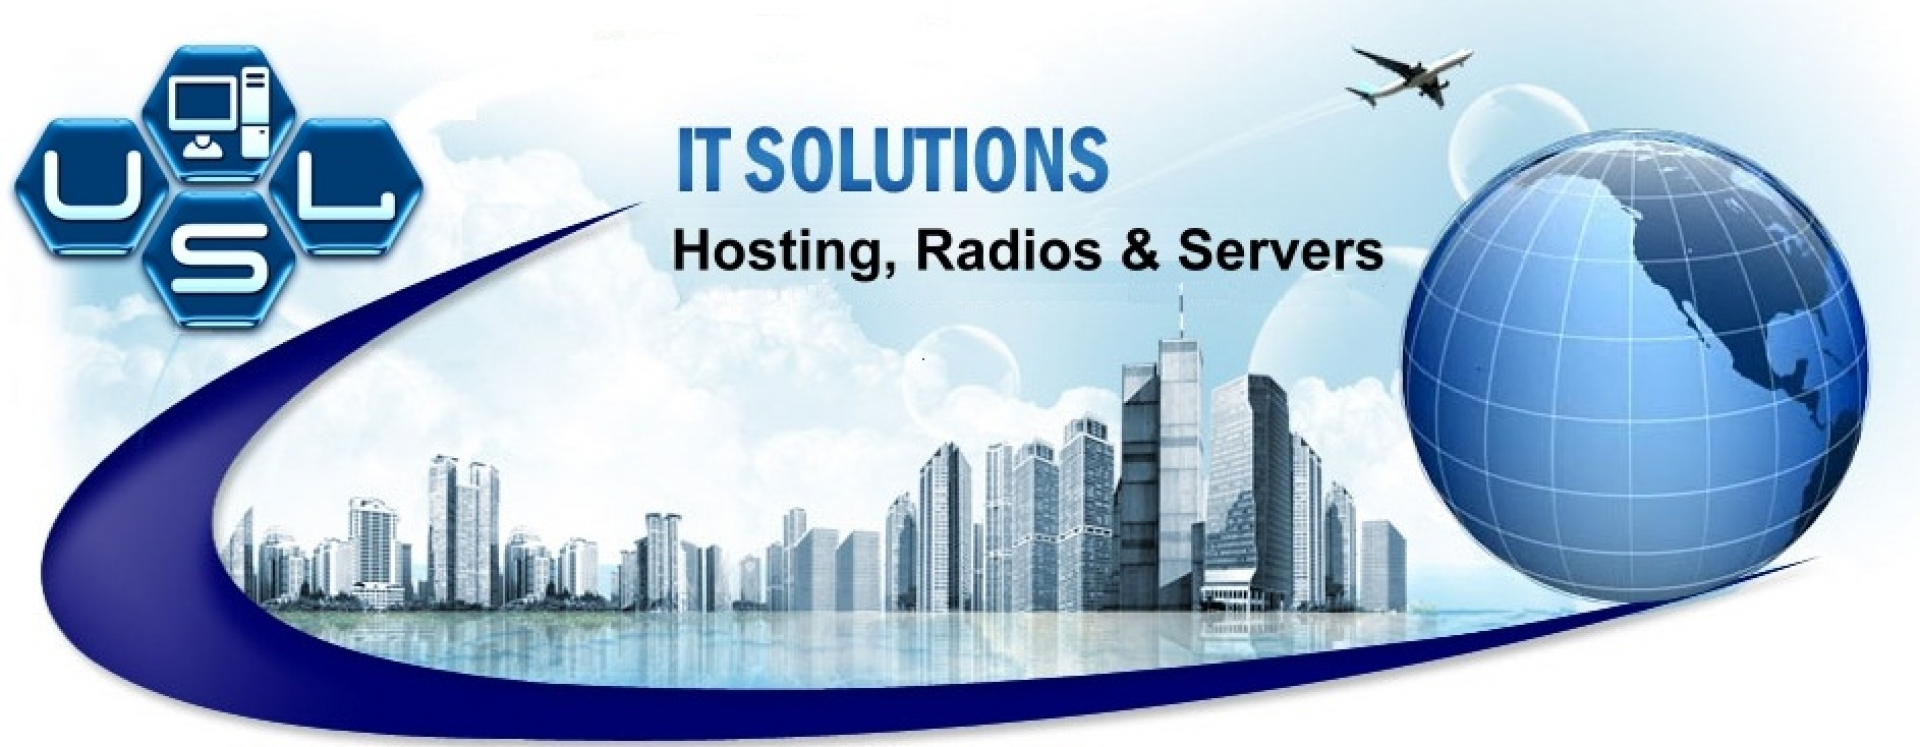 USL Hosting Radios & Servers Tips & Information Blog